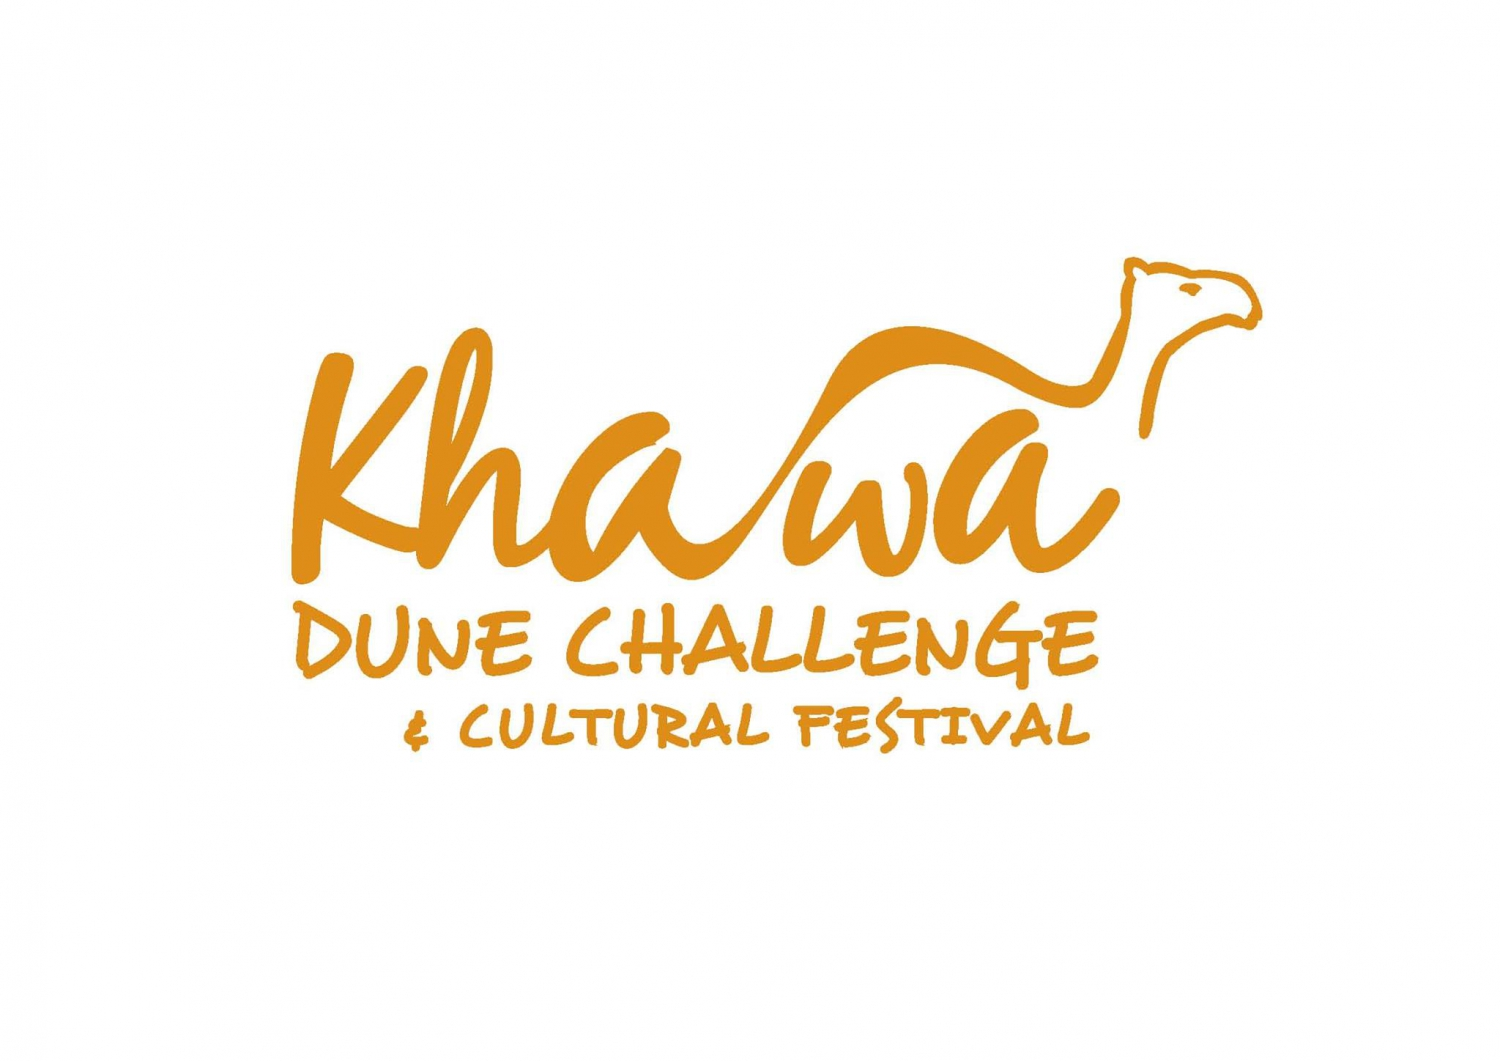 Khawa Dune Challenge & Cultural Festival